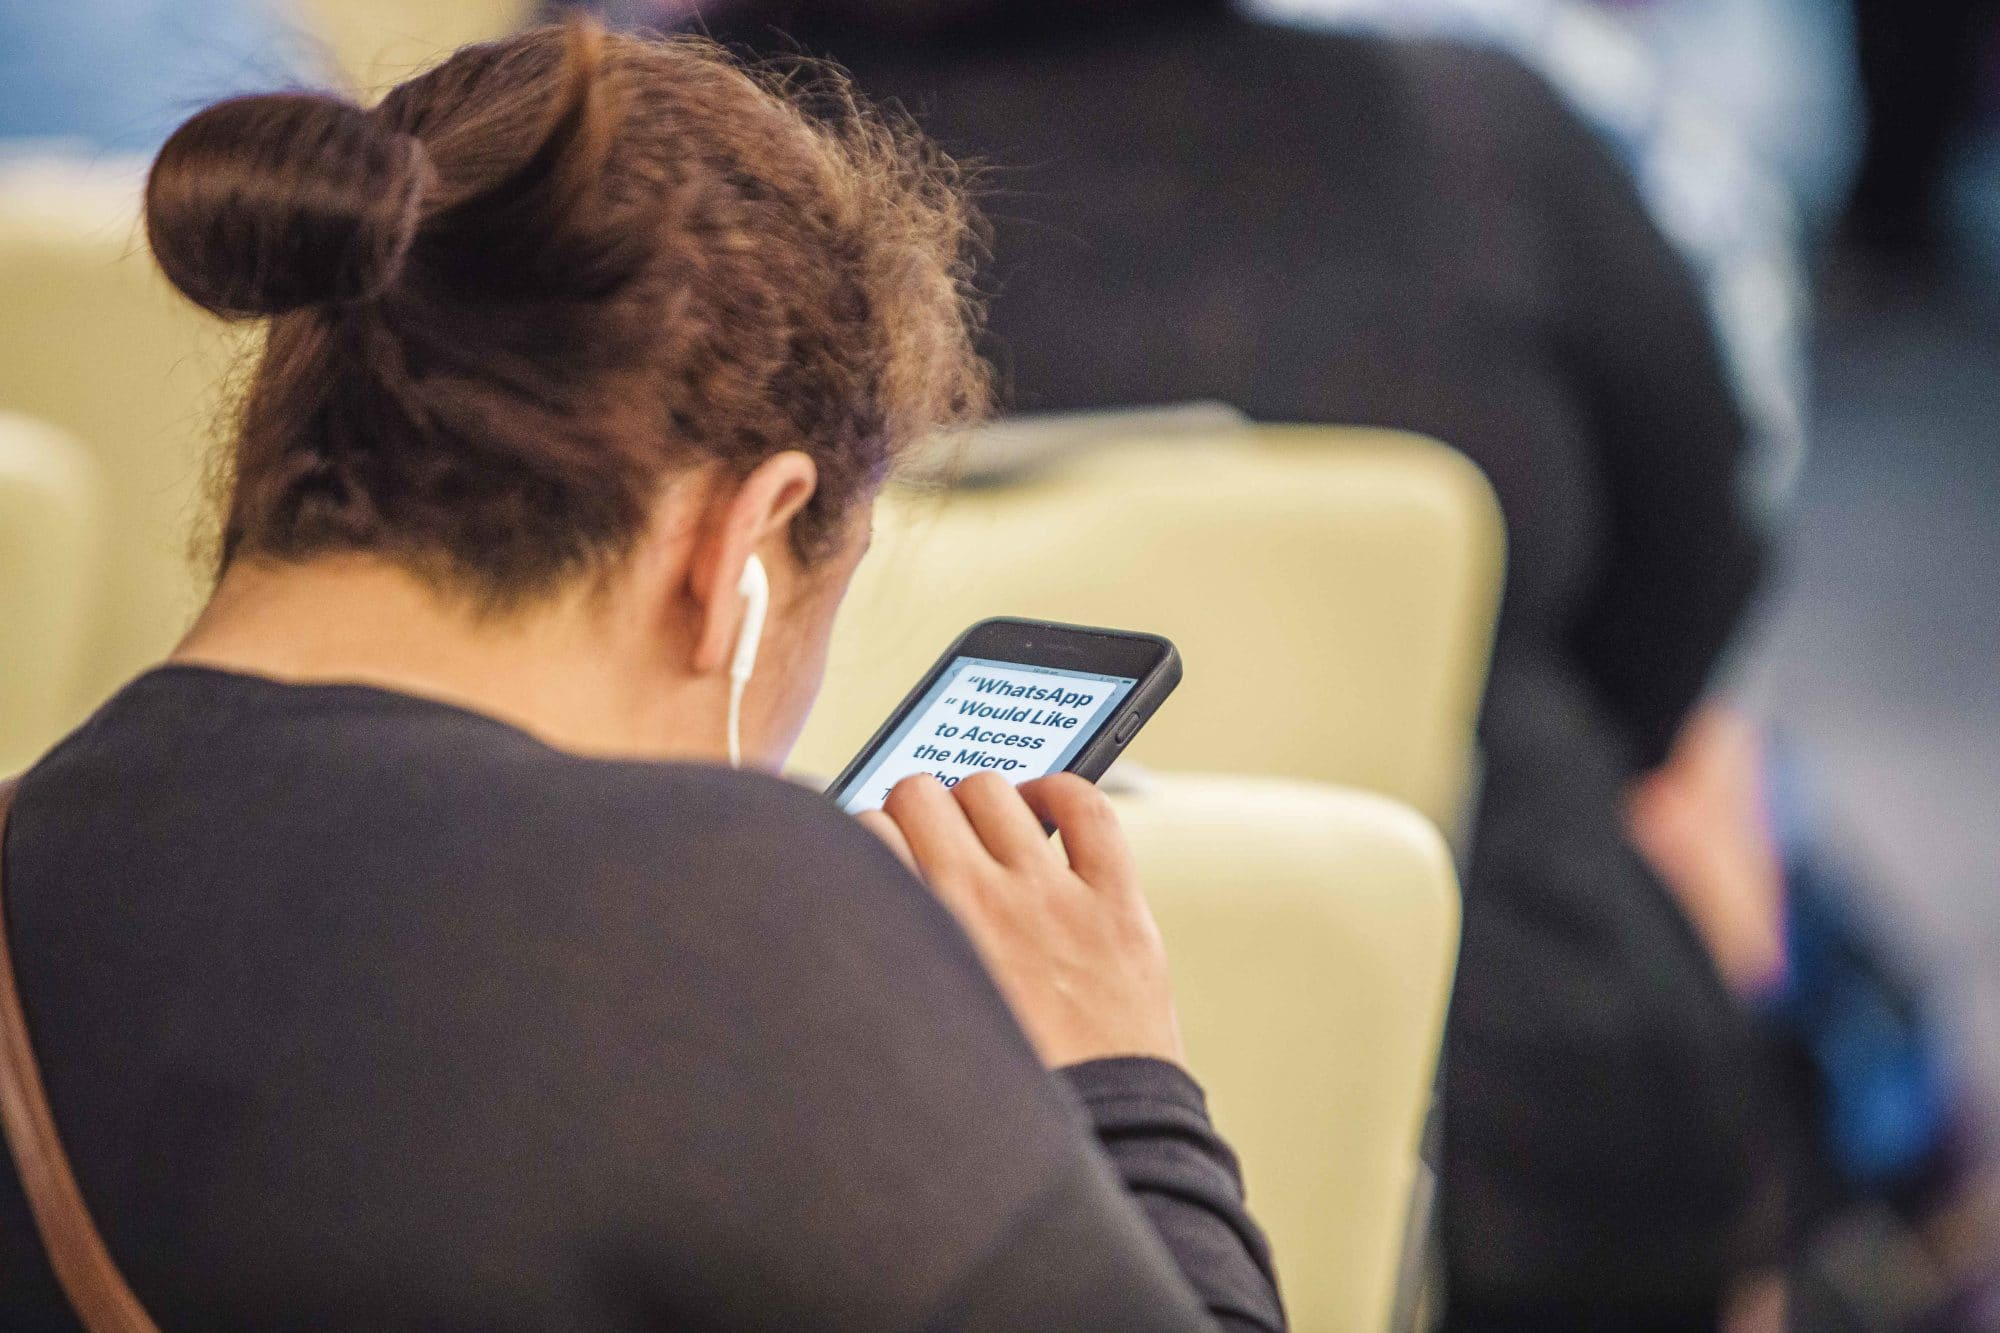 Woman looking at information on mobile phone